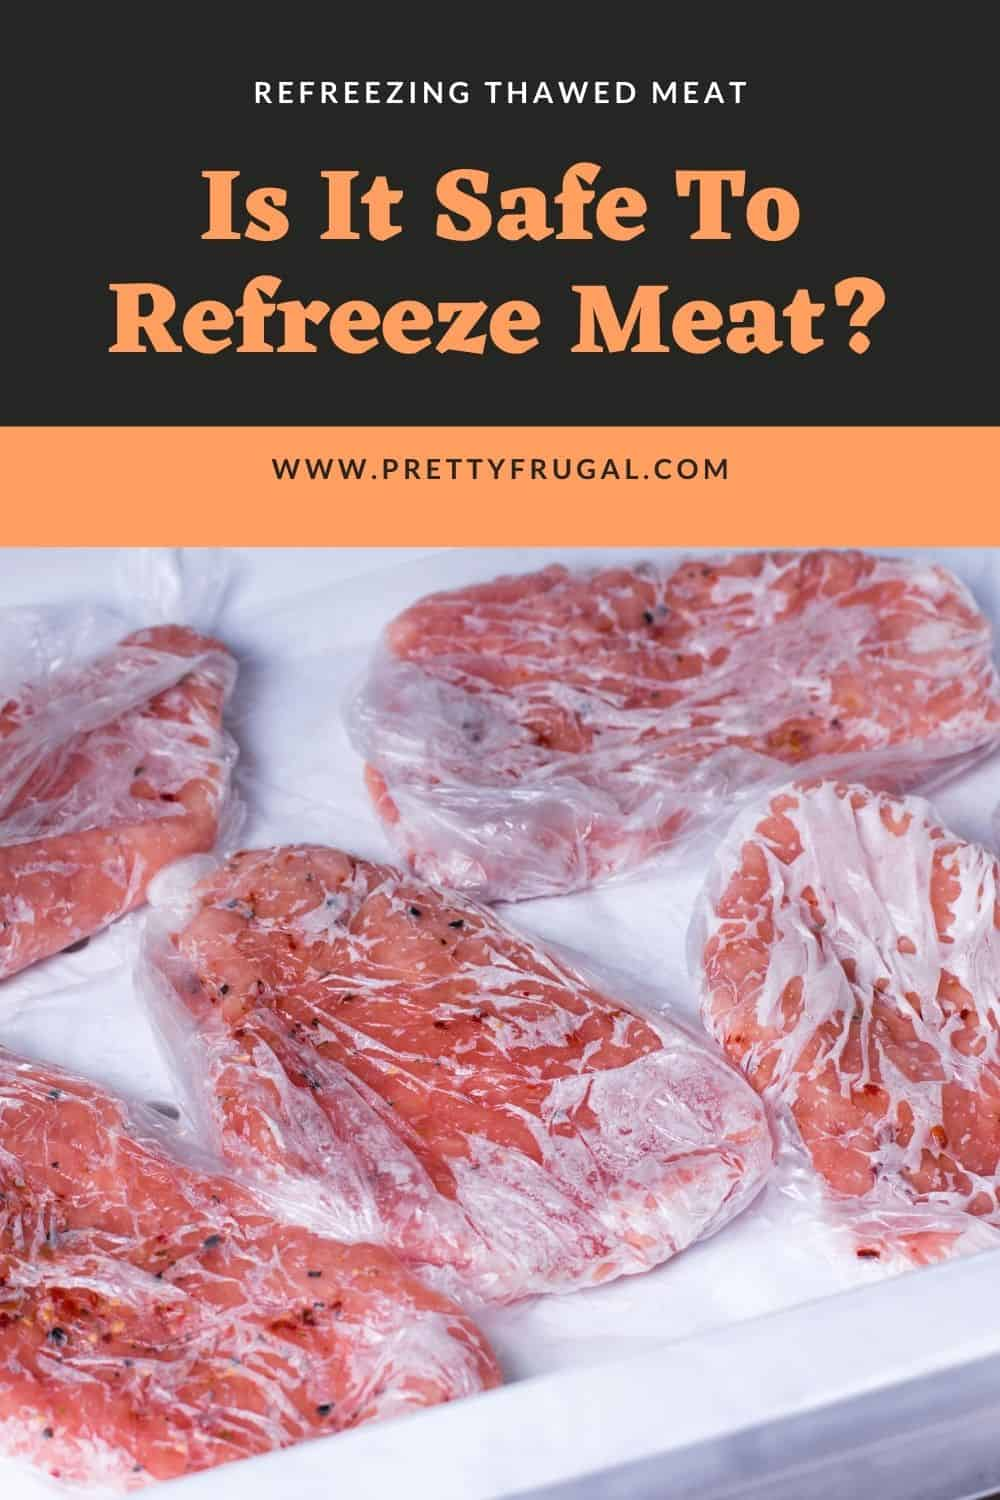 Is It Safe To Refreeze Meat